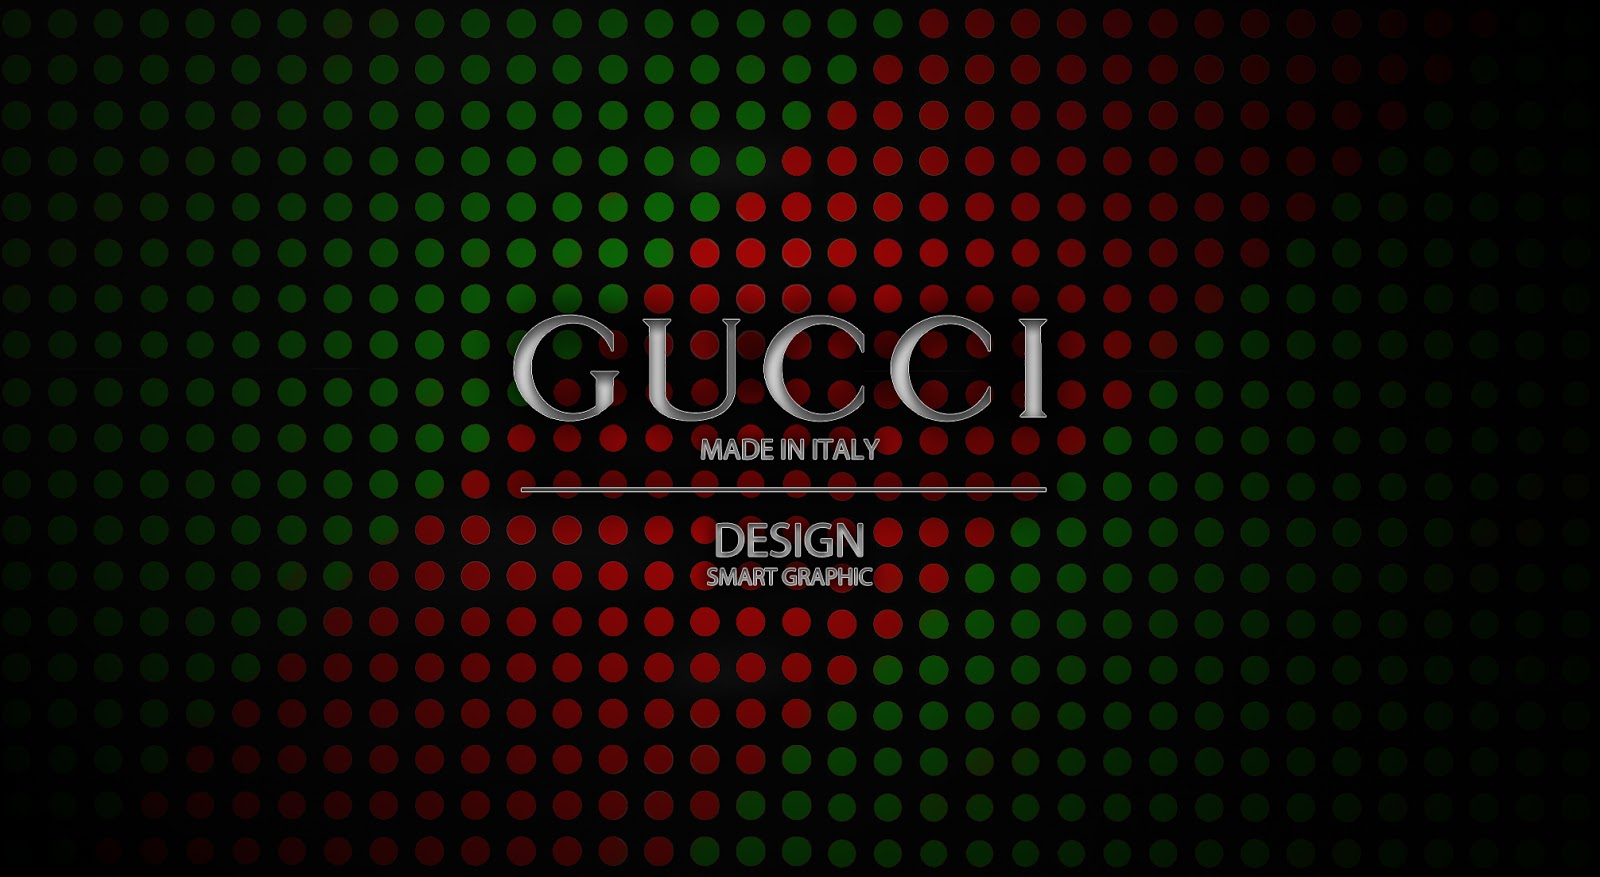 48+ Gucci Wallpaper HD on WallpaperSafari